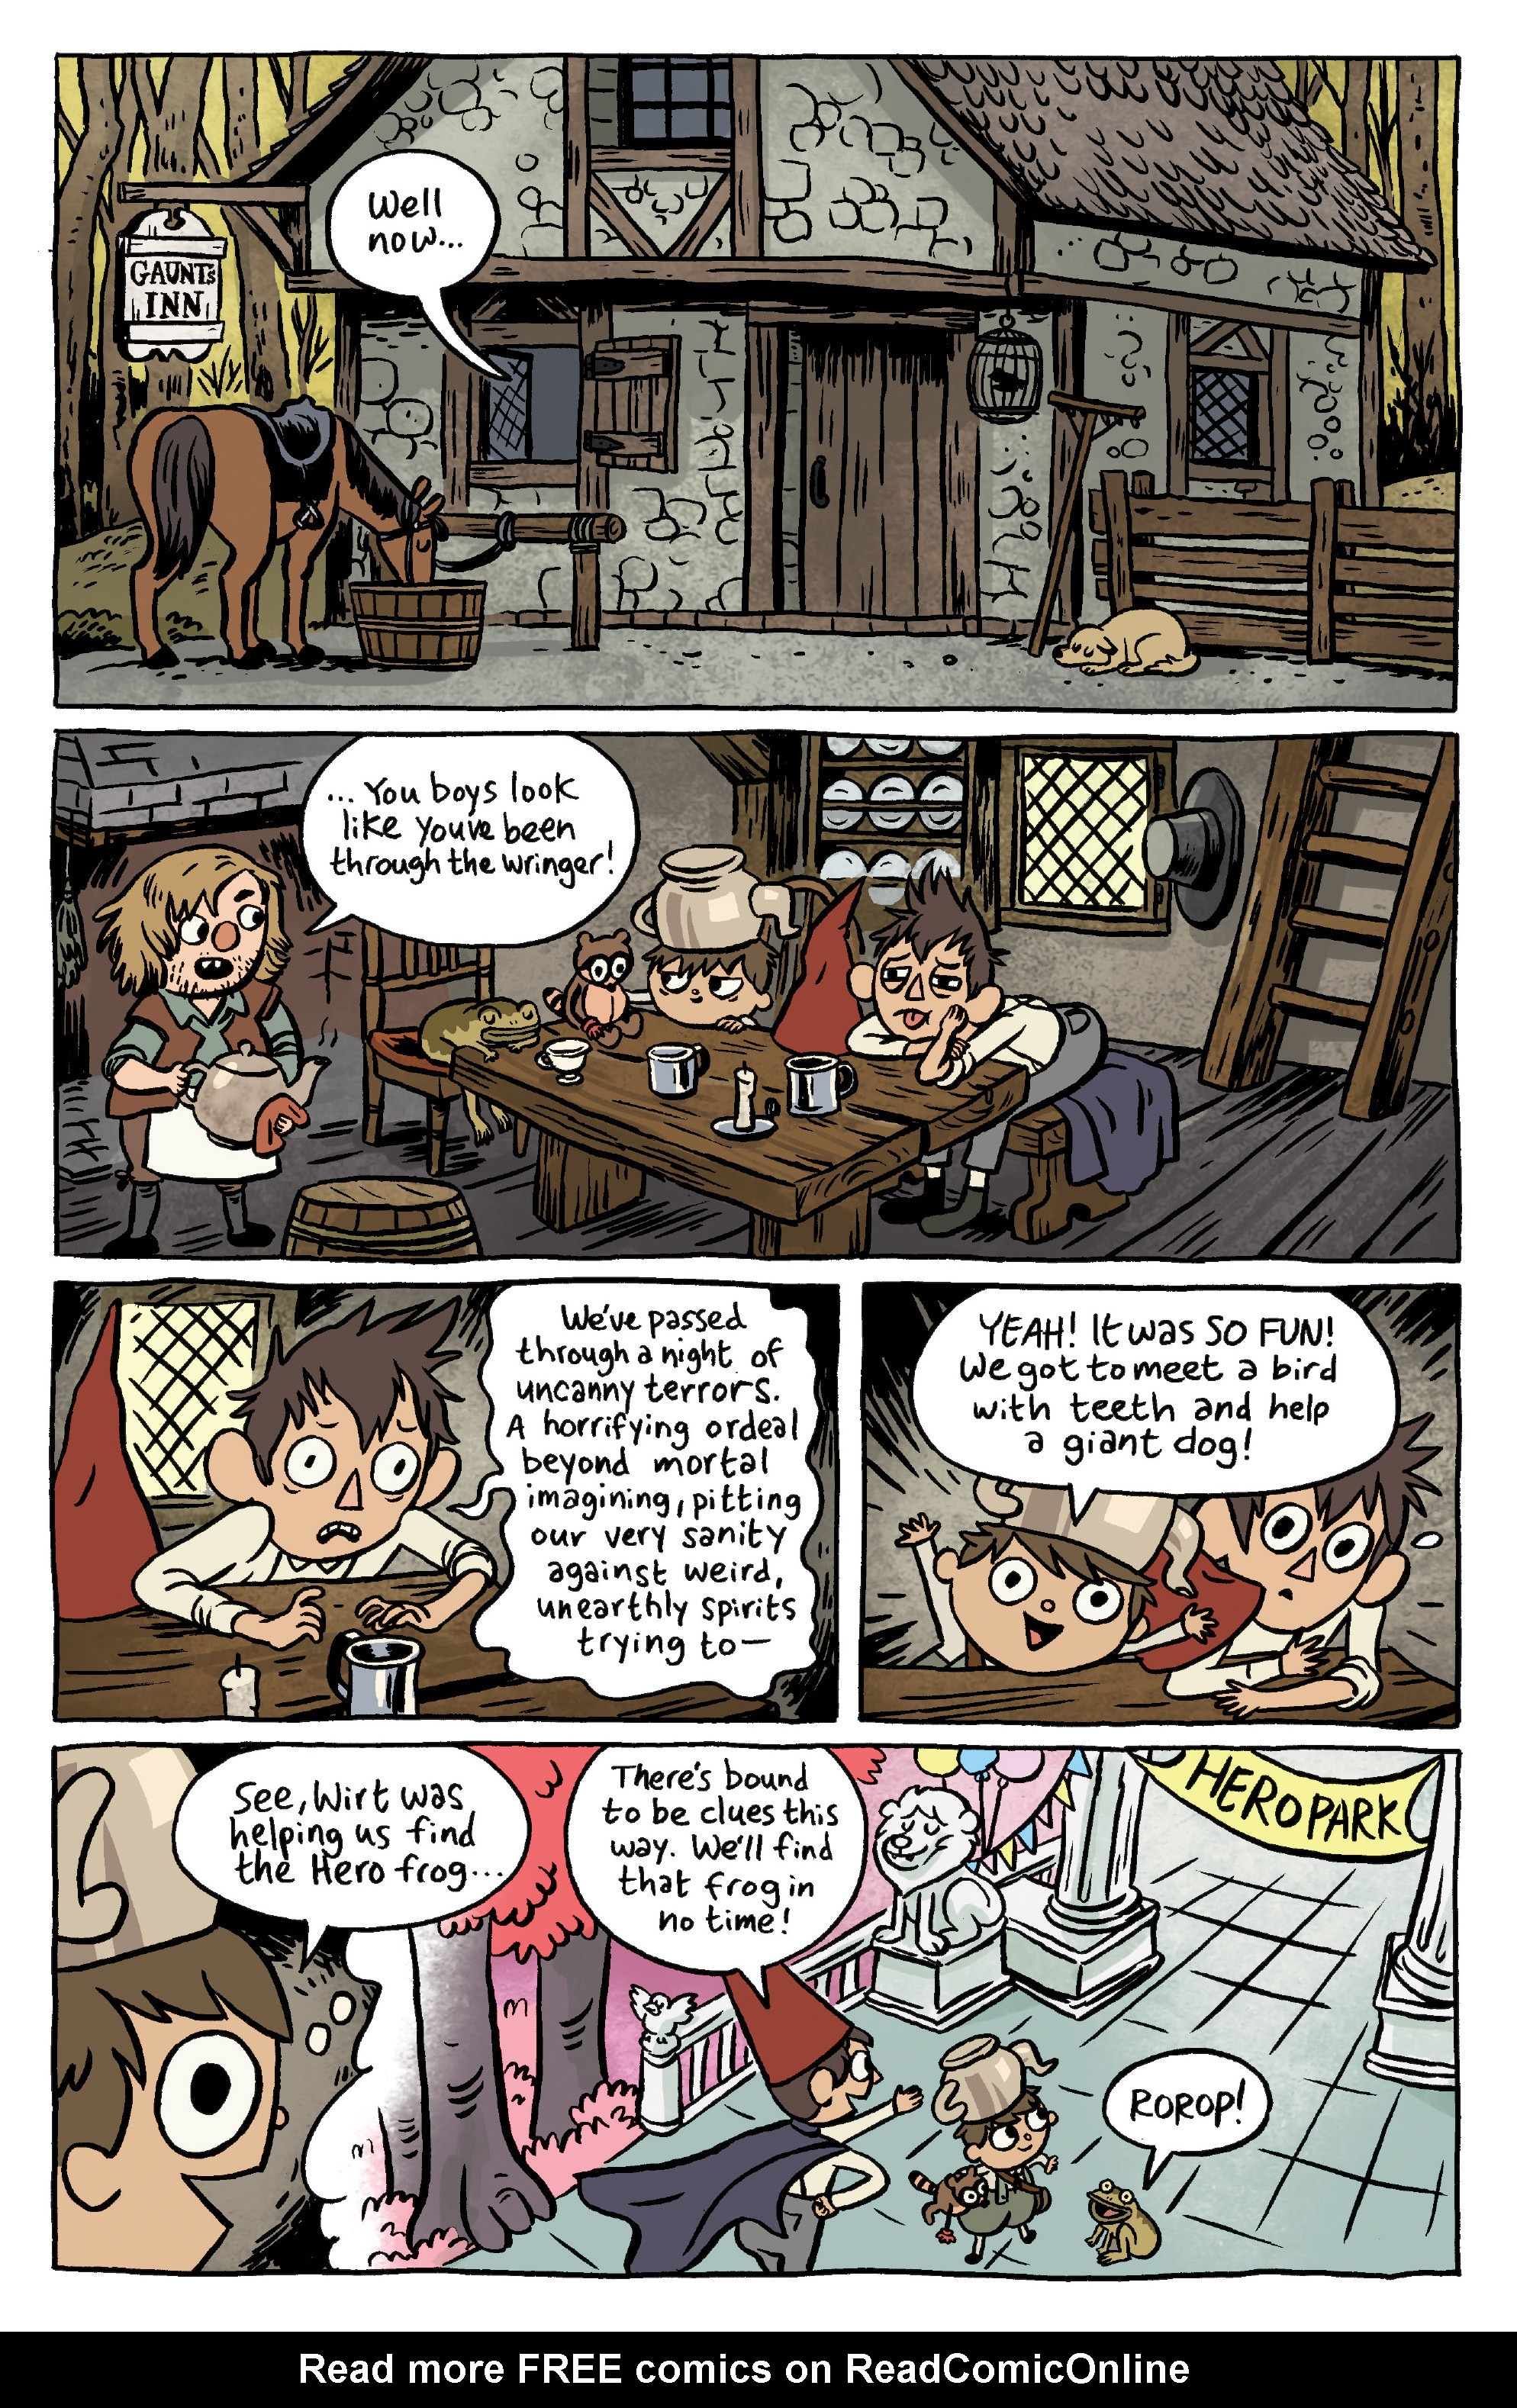 Read Online Over The Garden Wall 2016 Comic Issue 6